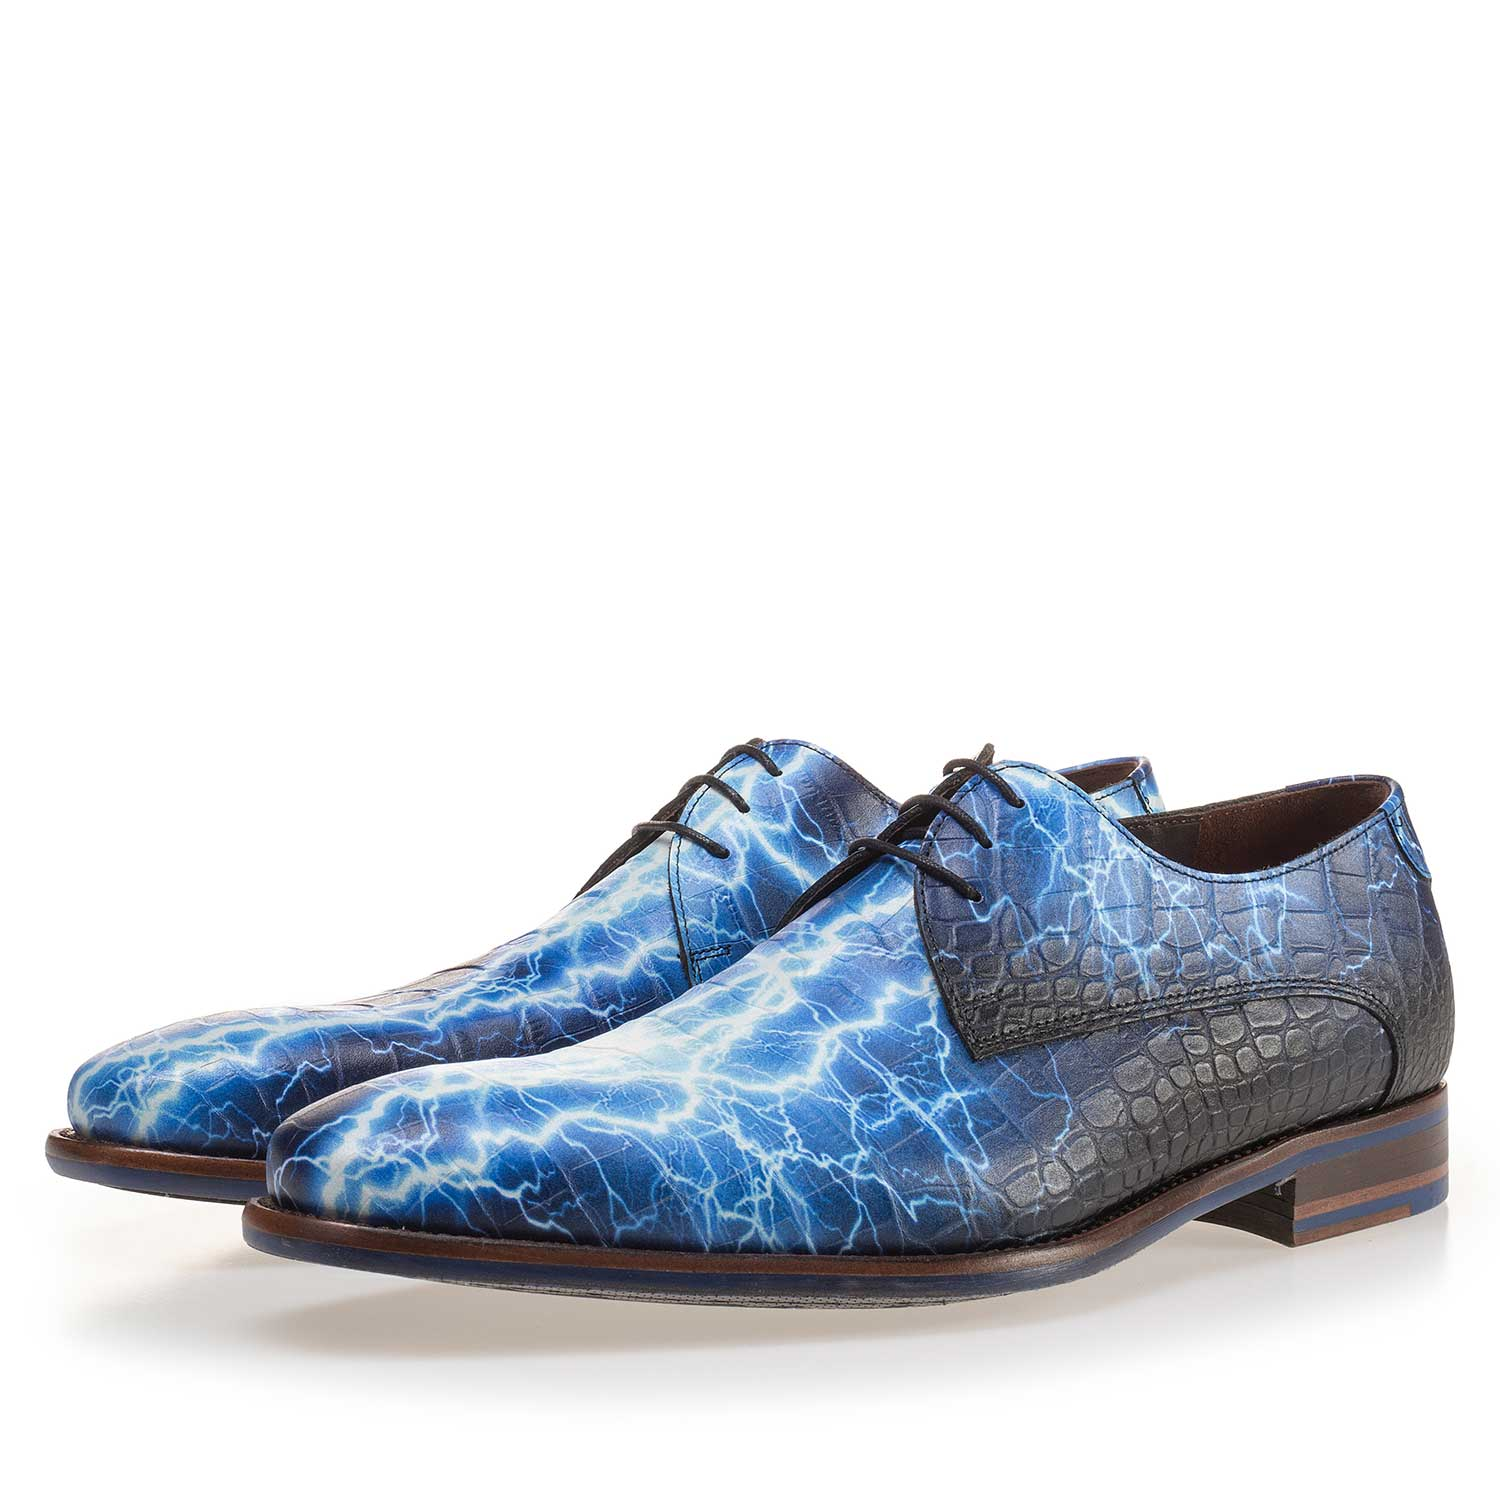 14267/00 - Premium blue printed leather lace shoe